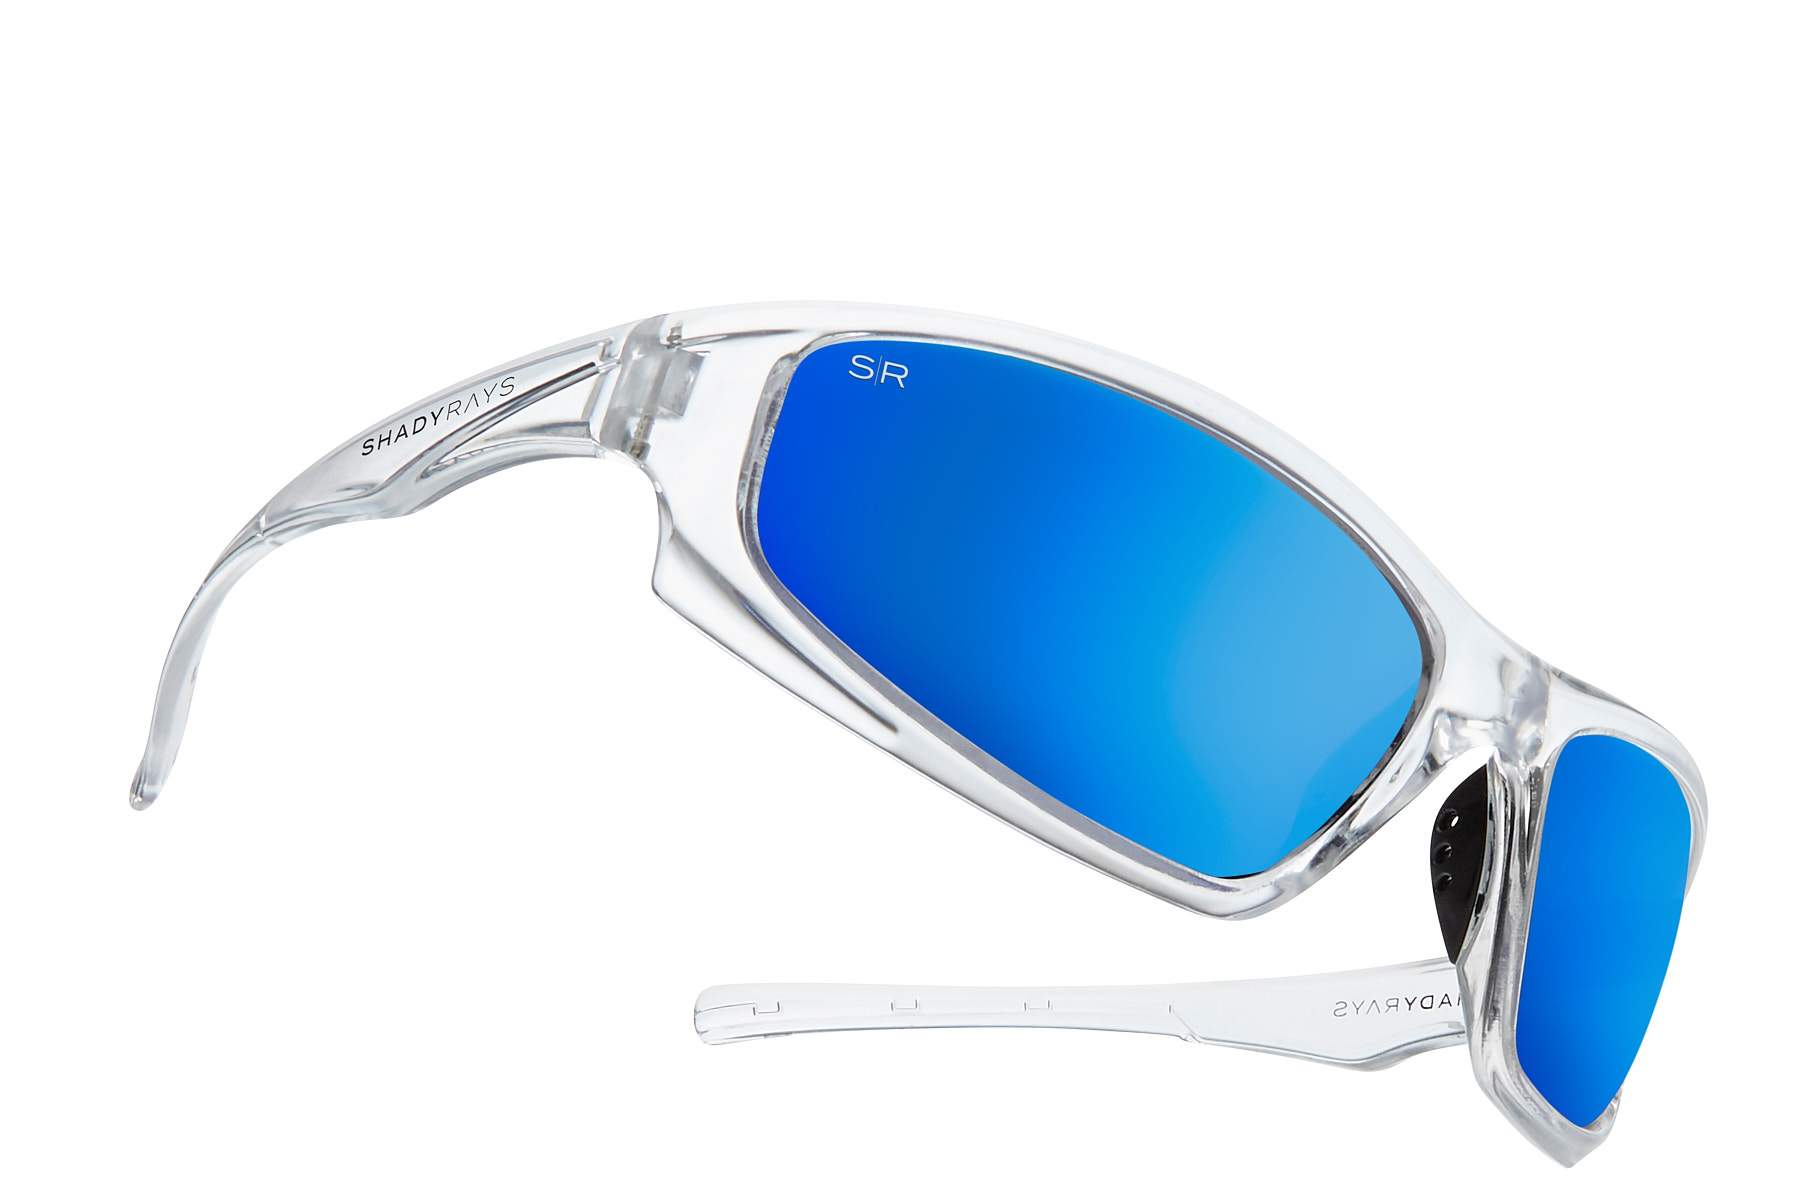 b36161d2ee Shady Rays X Series - Ocean Ice Polarized Sunglasses – Shady Rays ...